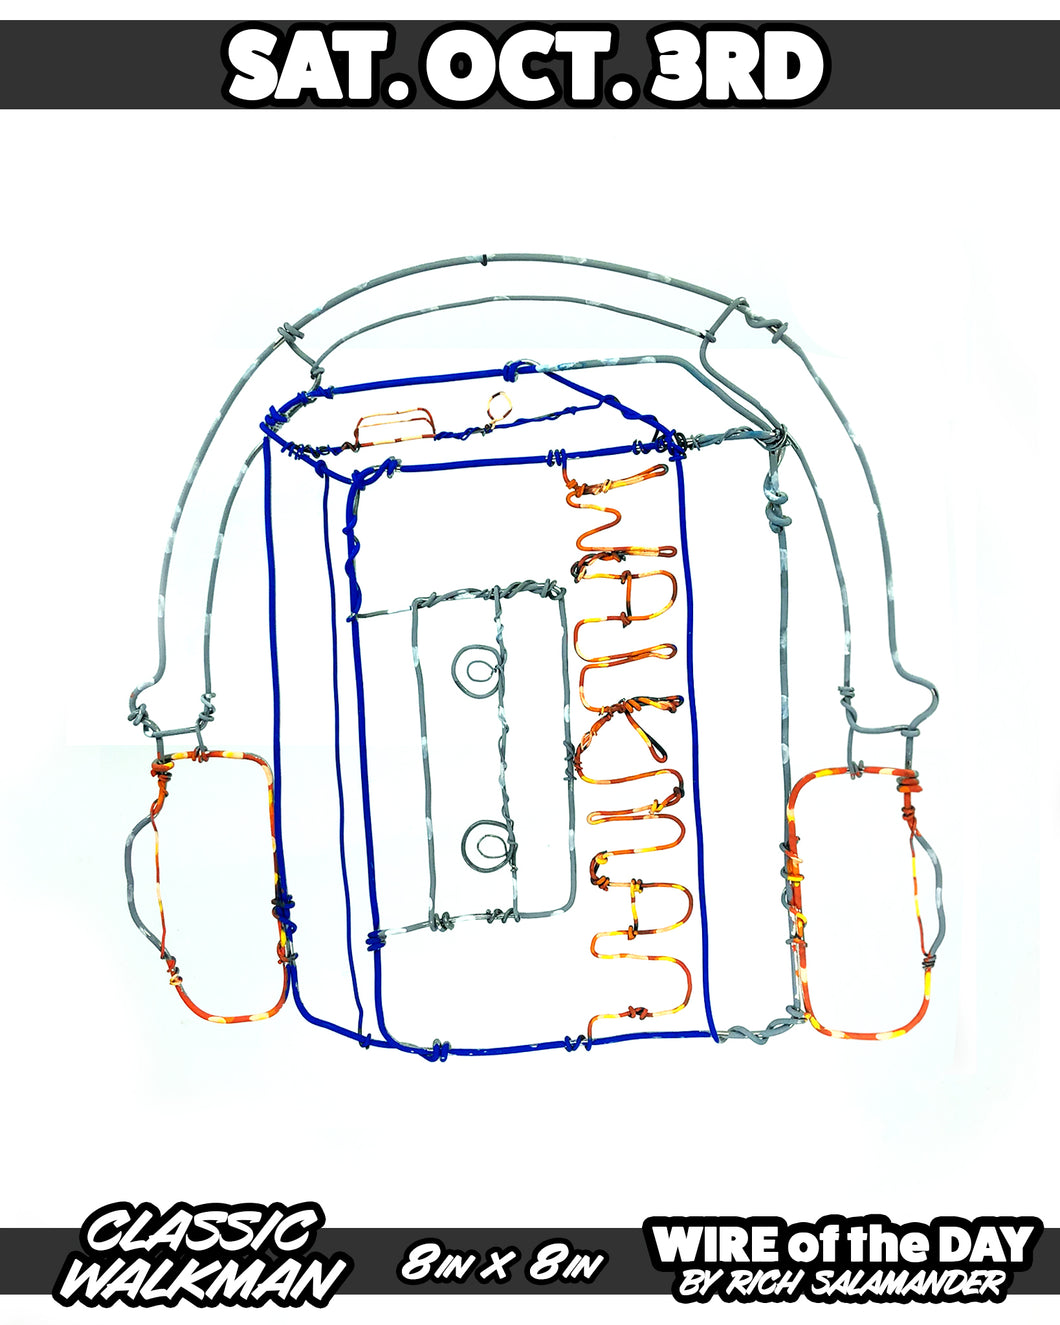 WIRE of the DAY CLASSIC WALKMAN